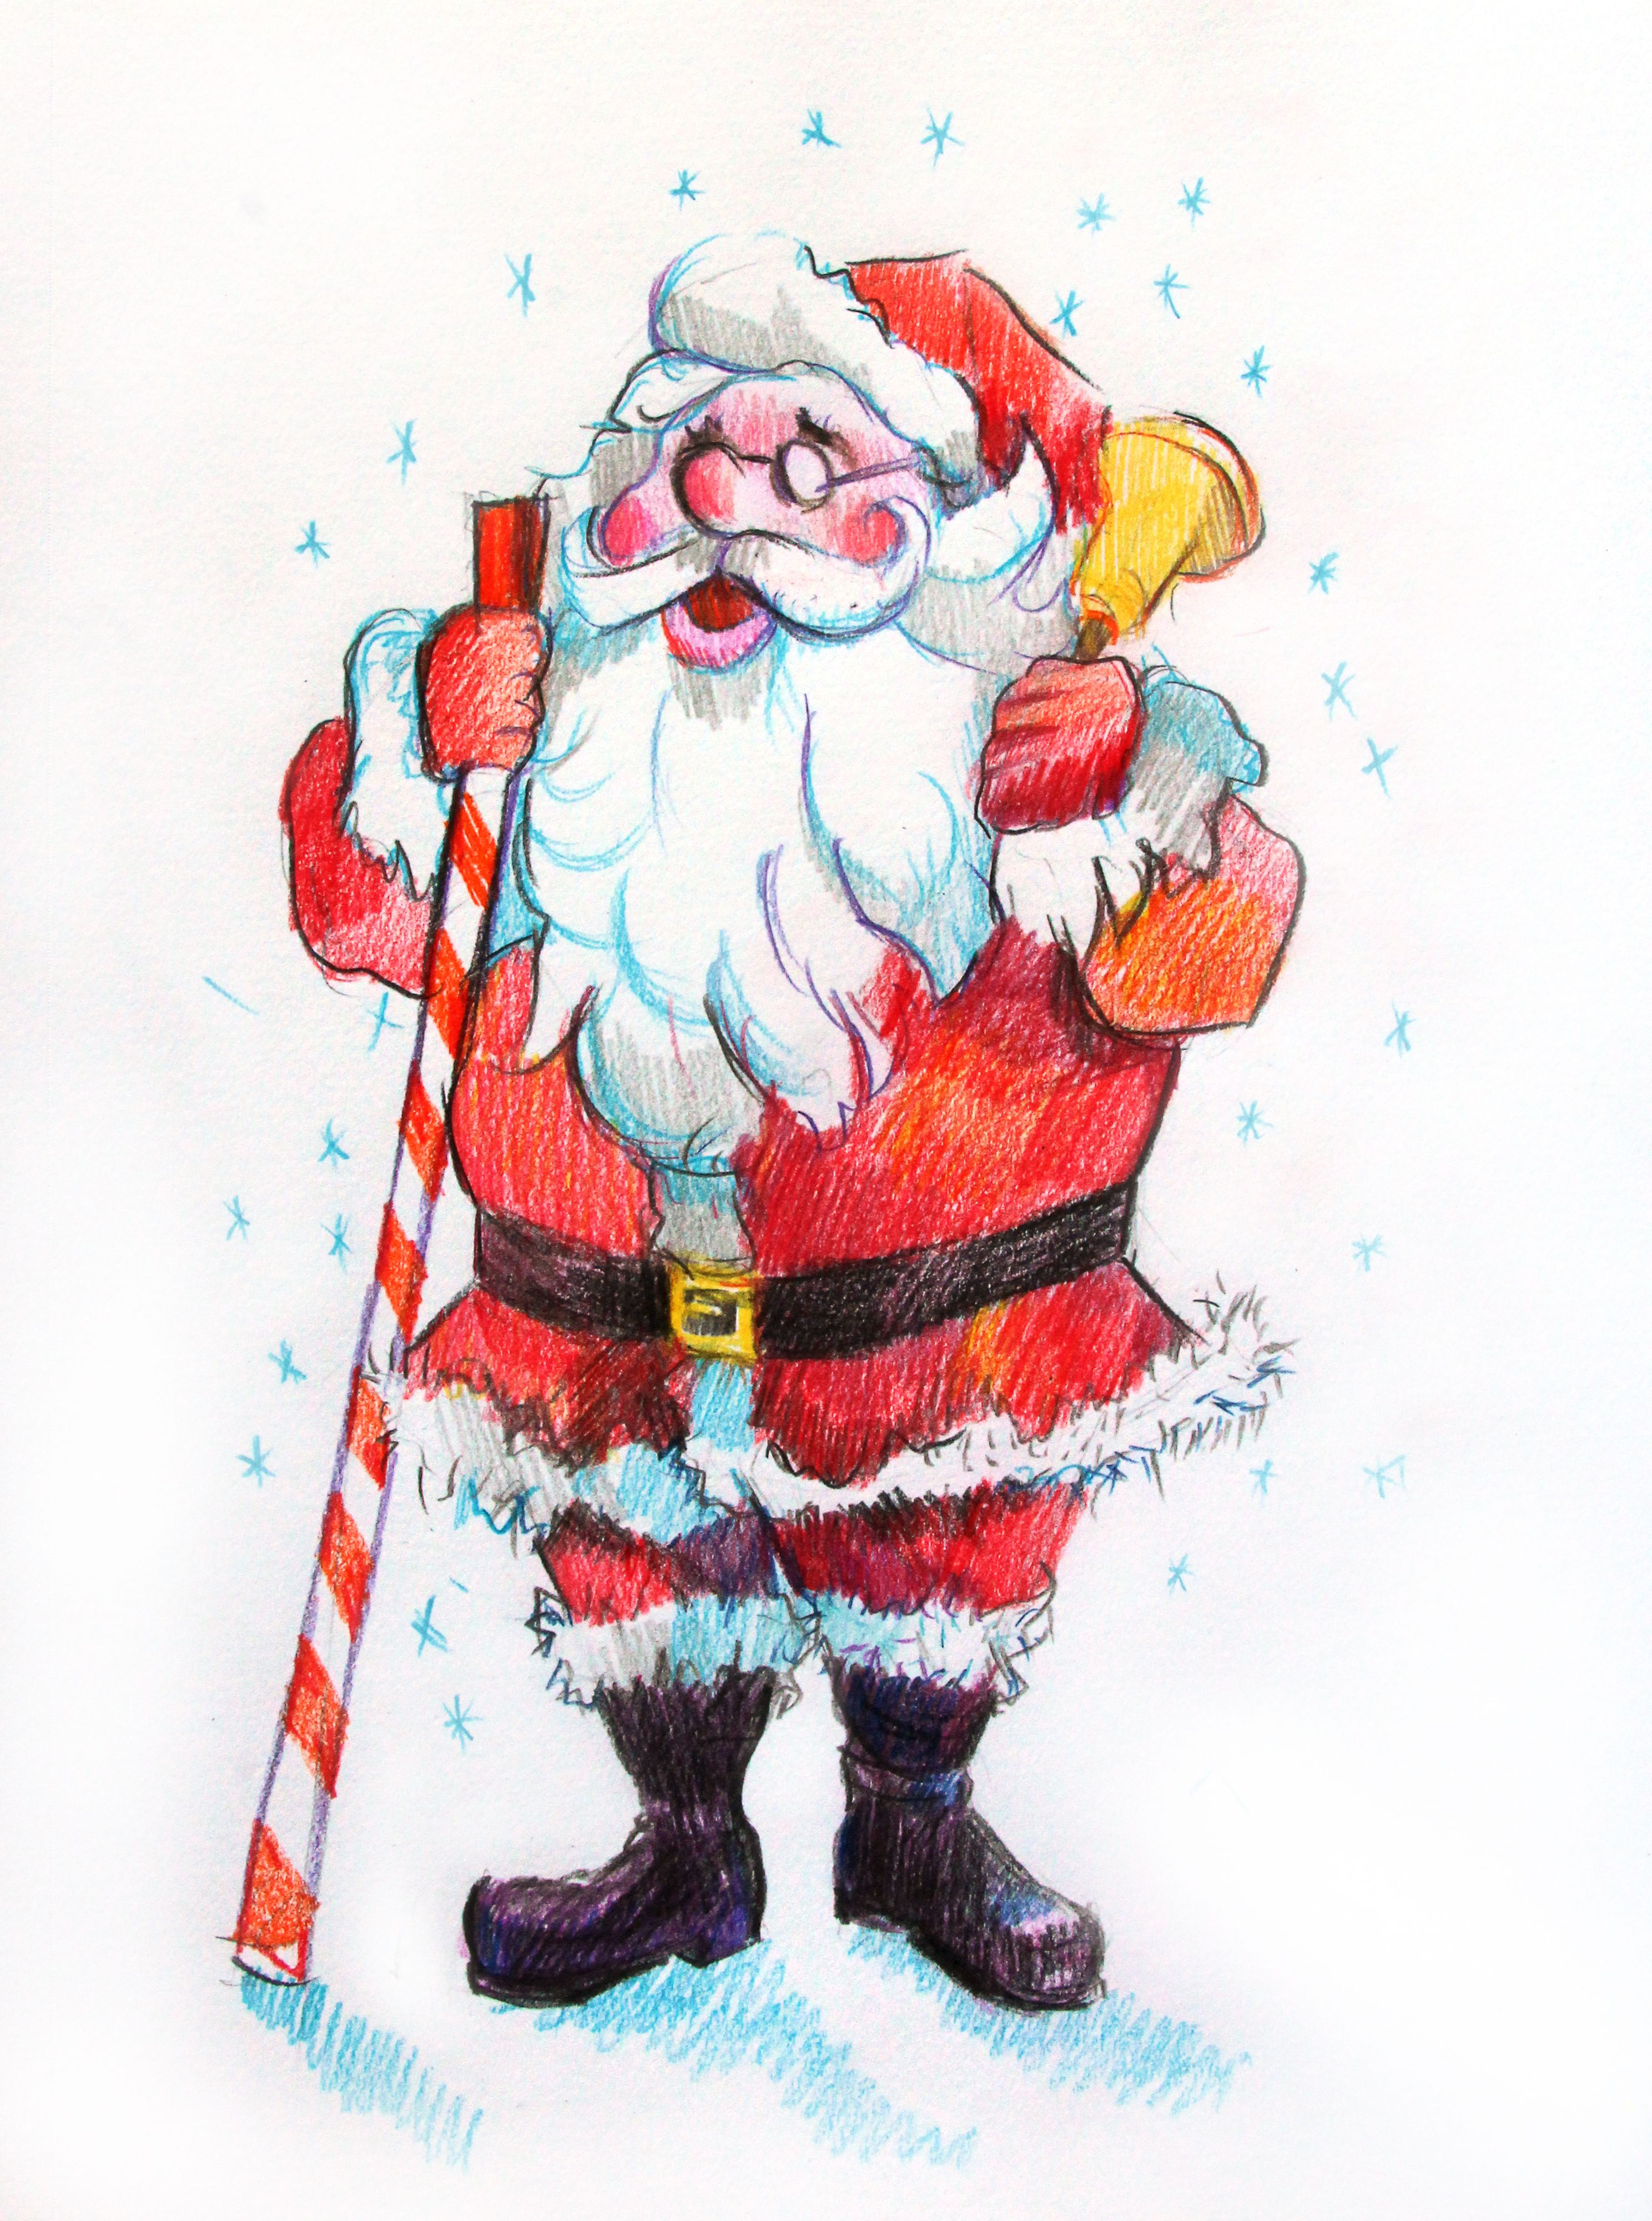 how to draw santa claus with colored pencils art lesson with natalka barvinok how to draw santa drawings santa claus drawing how to draw santa claus with colored